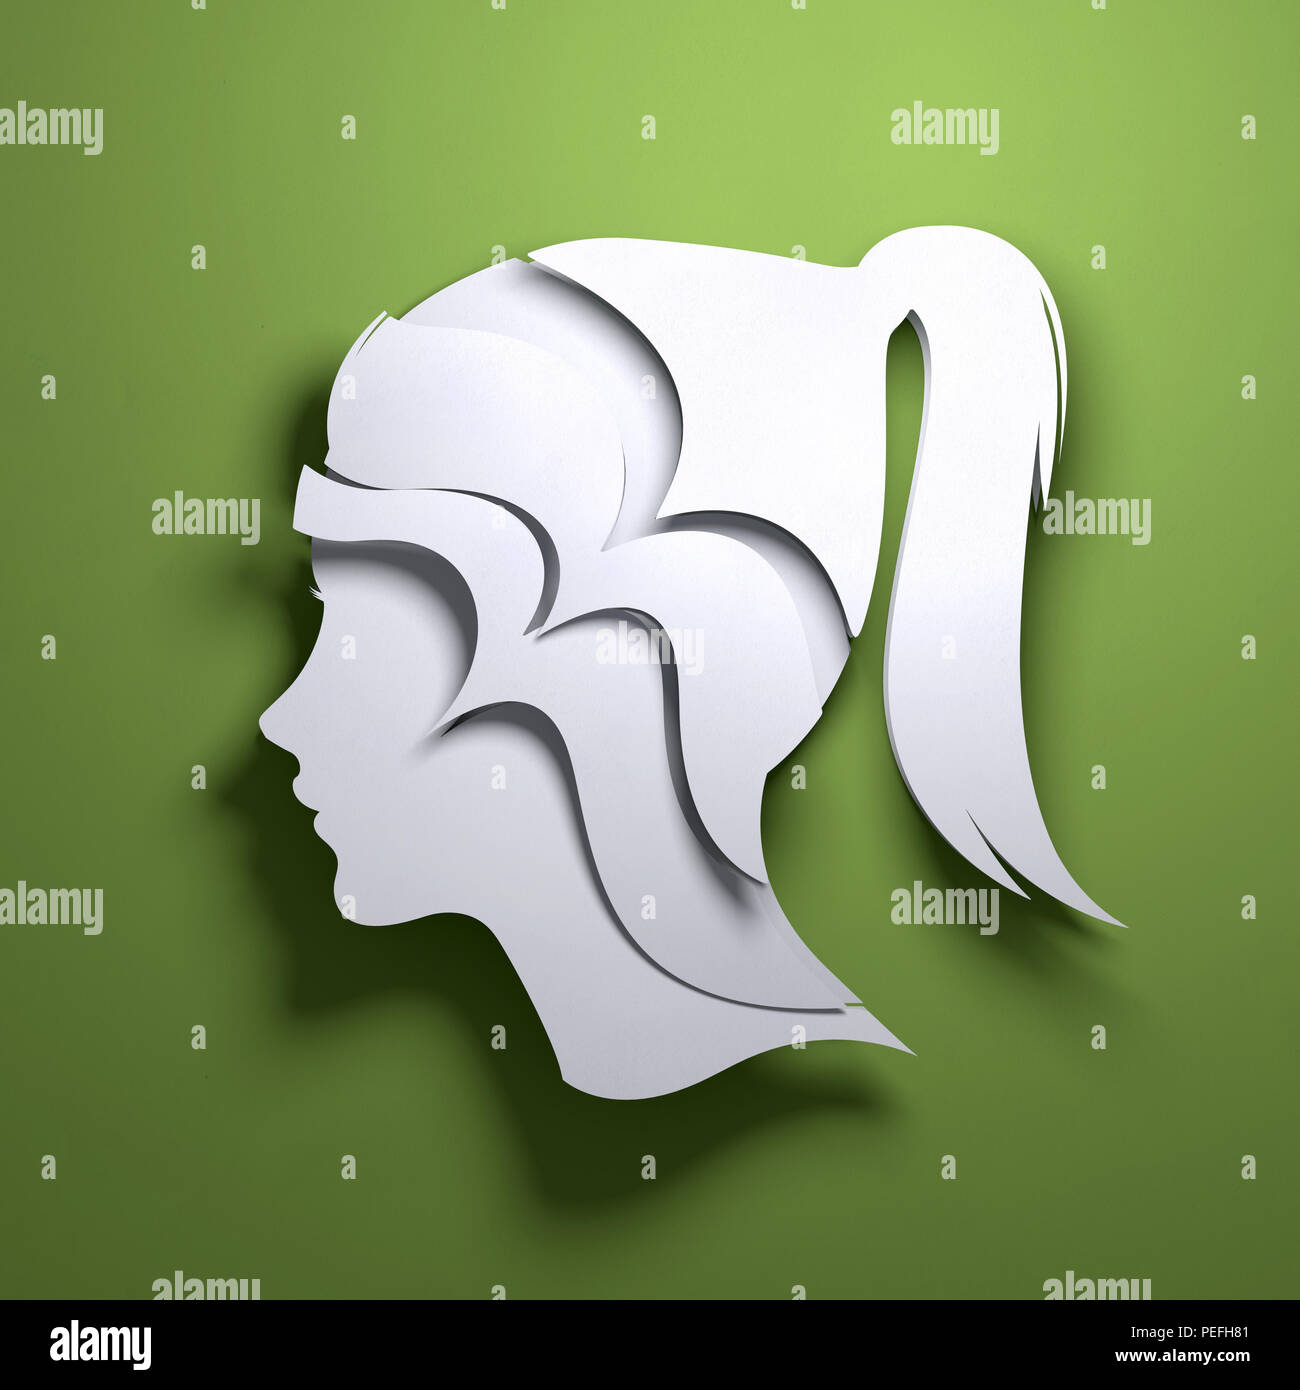 Folded Paper art origami. A silhouette of a persons head. Conceptual mindfulness 3D illustration. - Stock Image